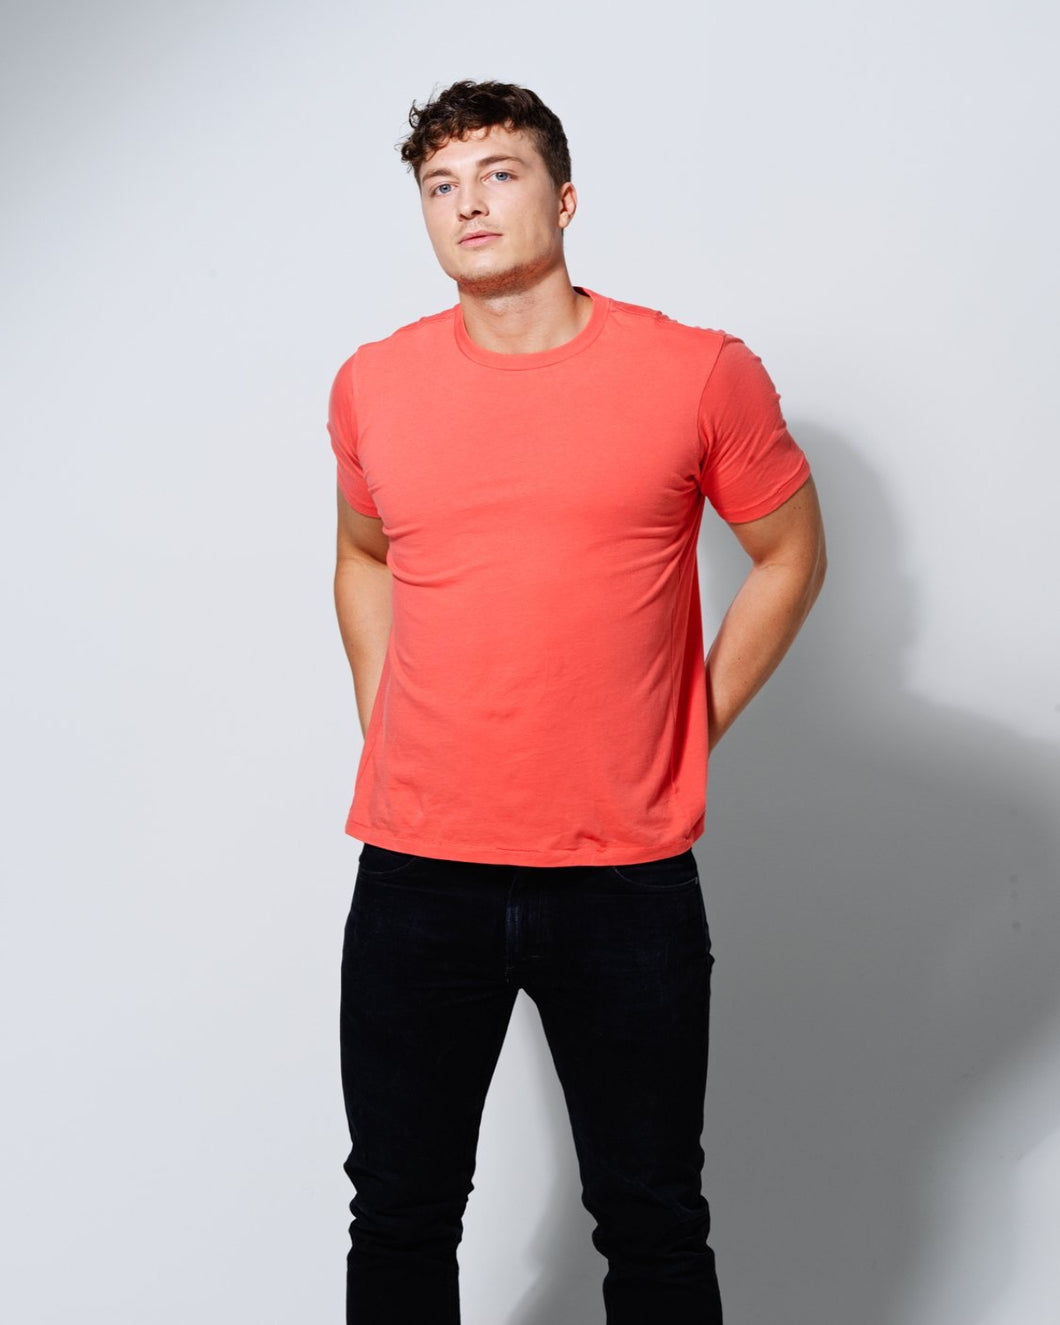 T- SHIRT CORAL ORANGE-T-shirt-Blankdays